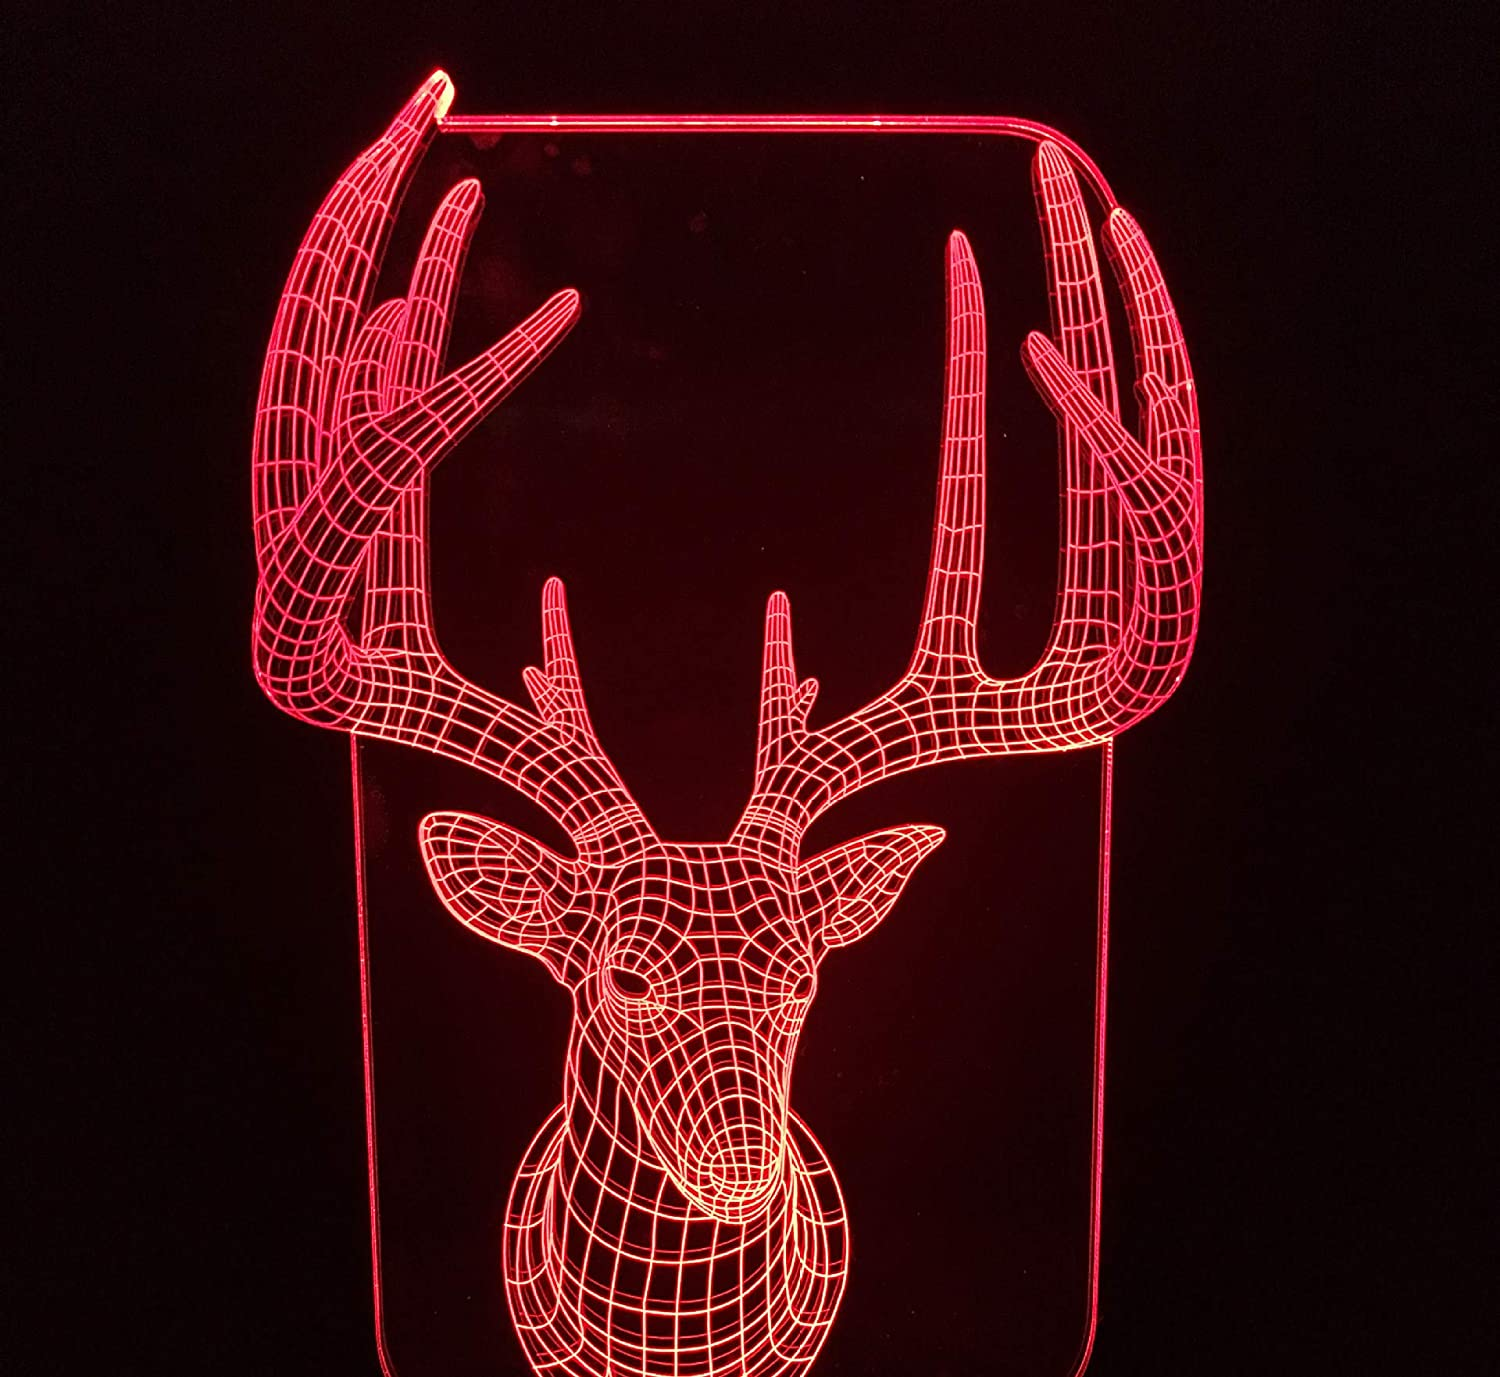 7 Colors Changing Bedroom Decor Night Light Gifts Xdorra Giraffe Acrylic 3D Illusion Night Lights USB LED Table Lamp Touch Switch Control Home r2d2 3D Arts Lamp Giraffe